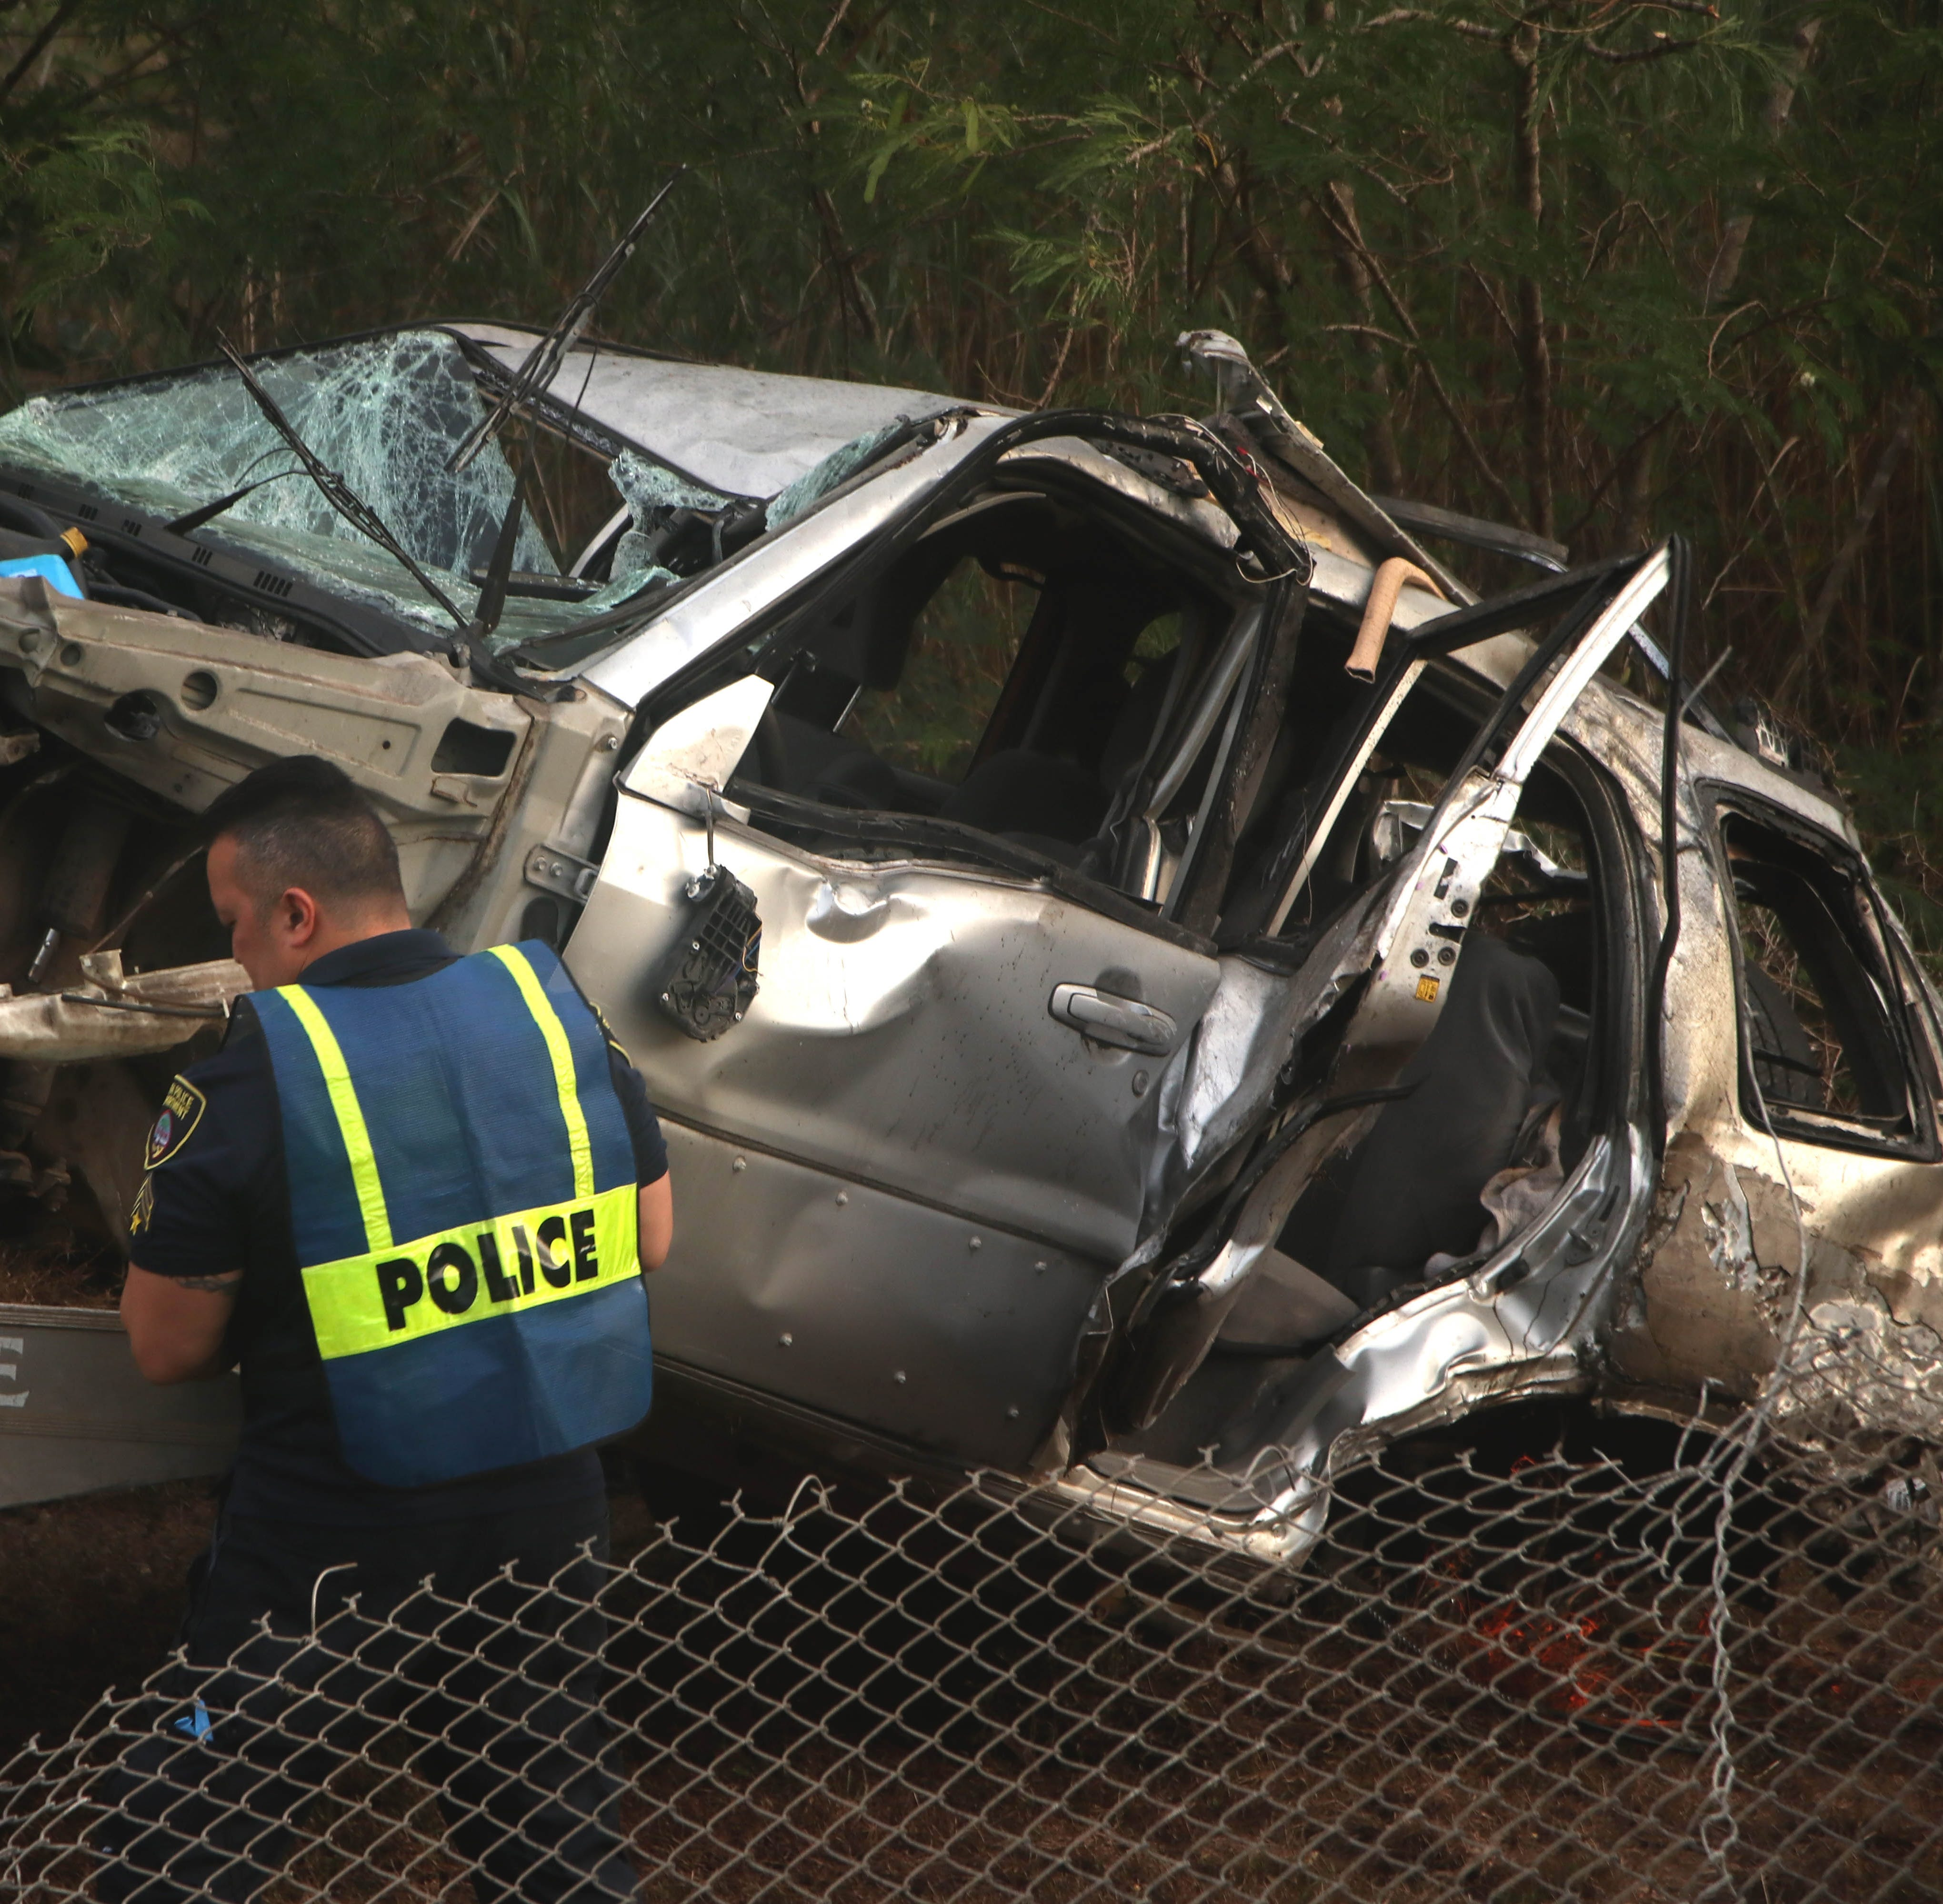 Agat fatal crash victim was a 16-year-old